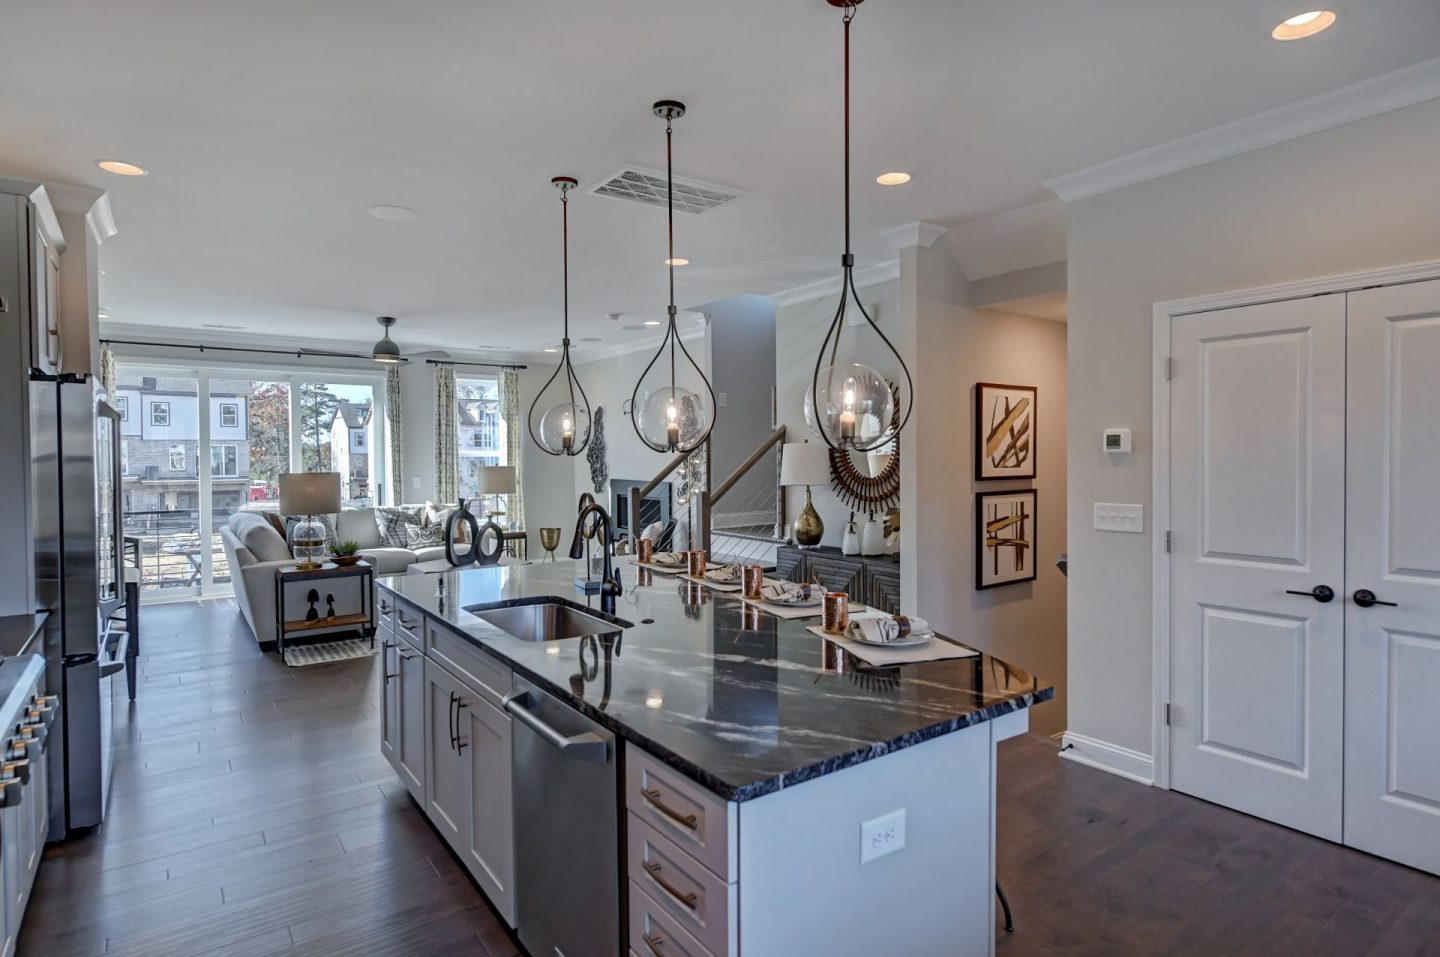 Wendwood Terrace - Charlotte, NC - Modern Open Floor Plan - Schwaiger Realty Group